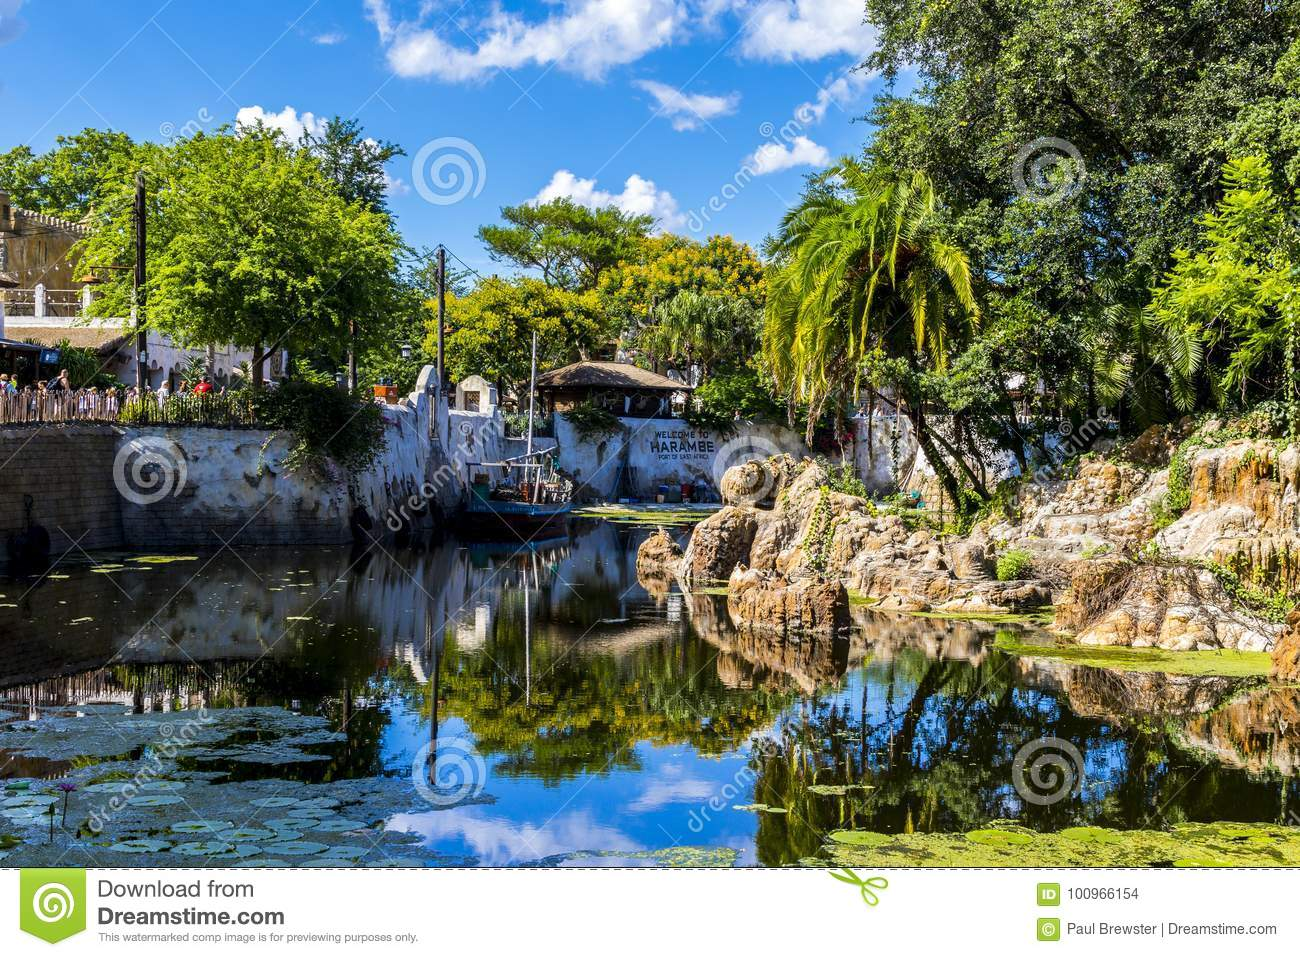 Disney-de boot van wereldorlando florida animal kingdom op water in Afrika